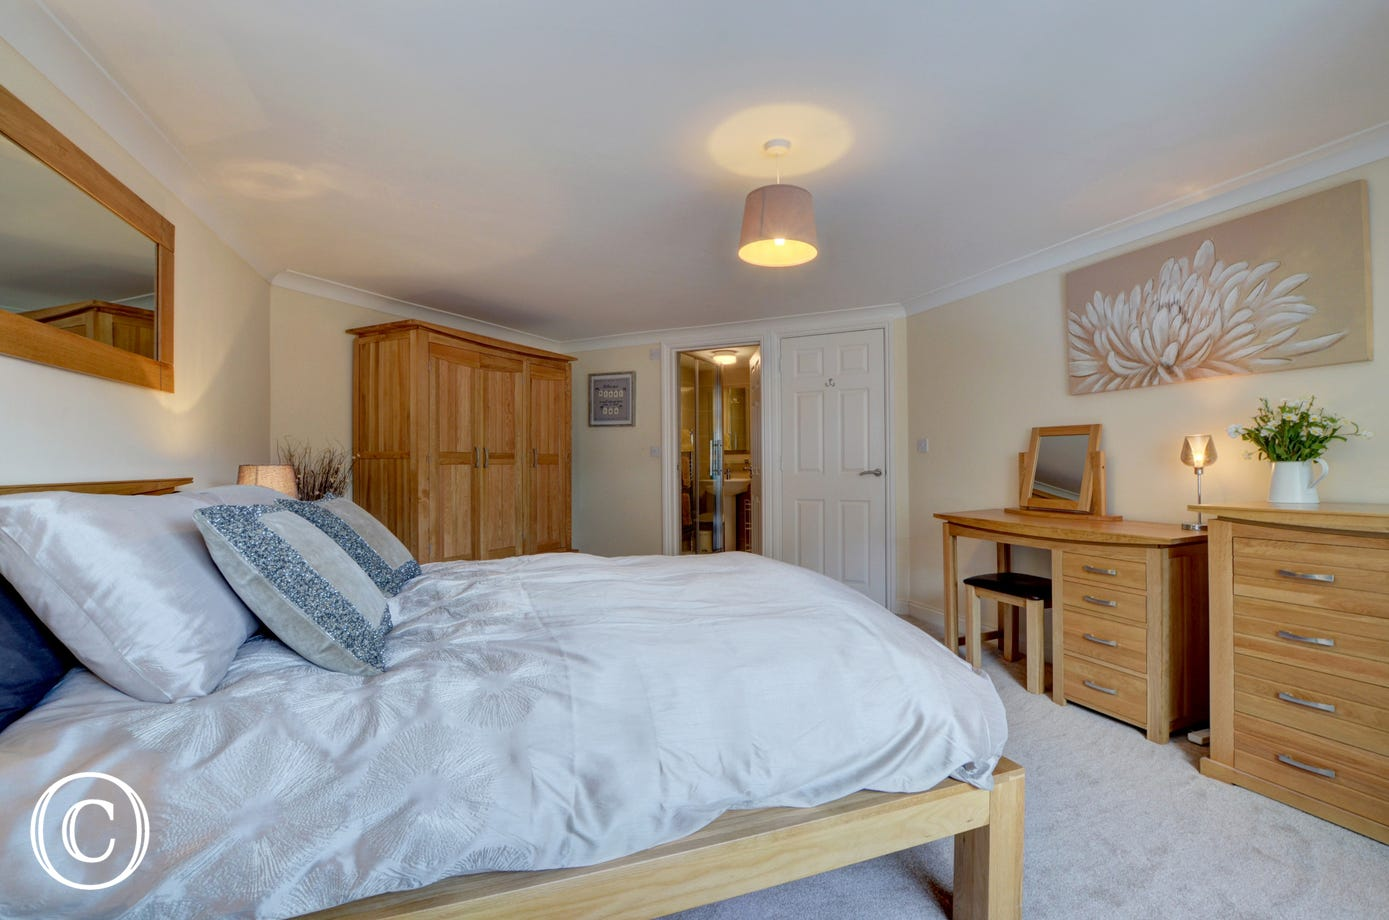 The spacious master bedroom with ensuite bathroom